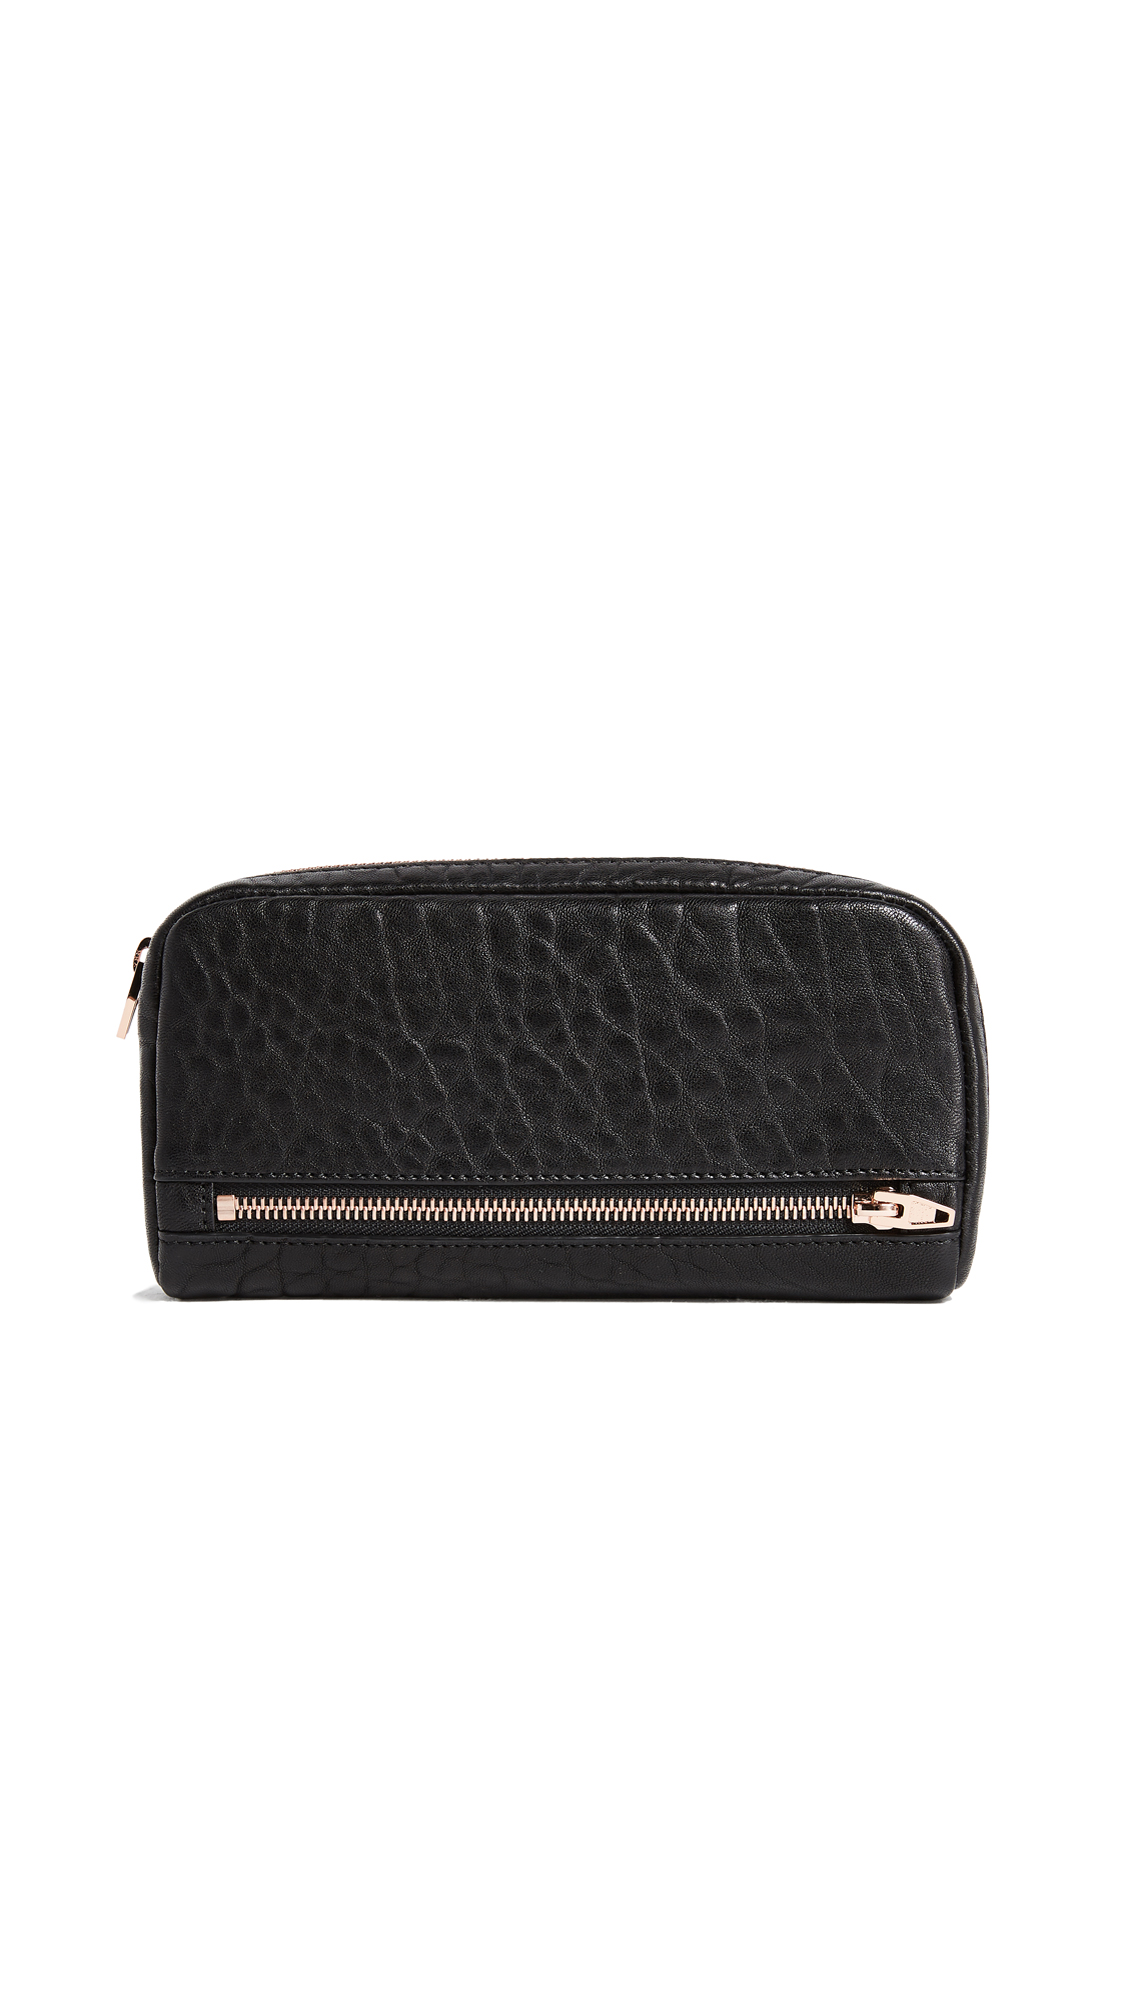 Alexander Wang Fumo Continental Wallet - Black